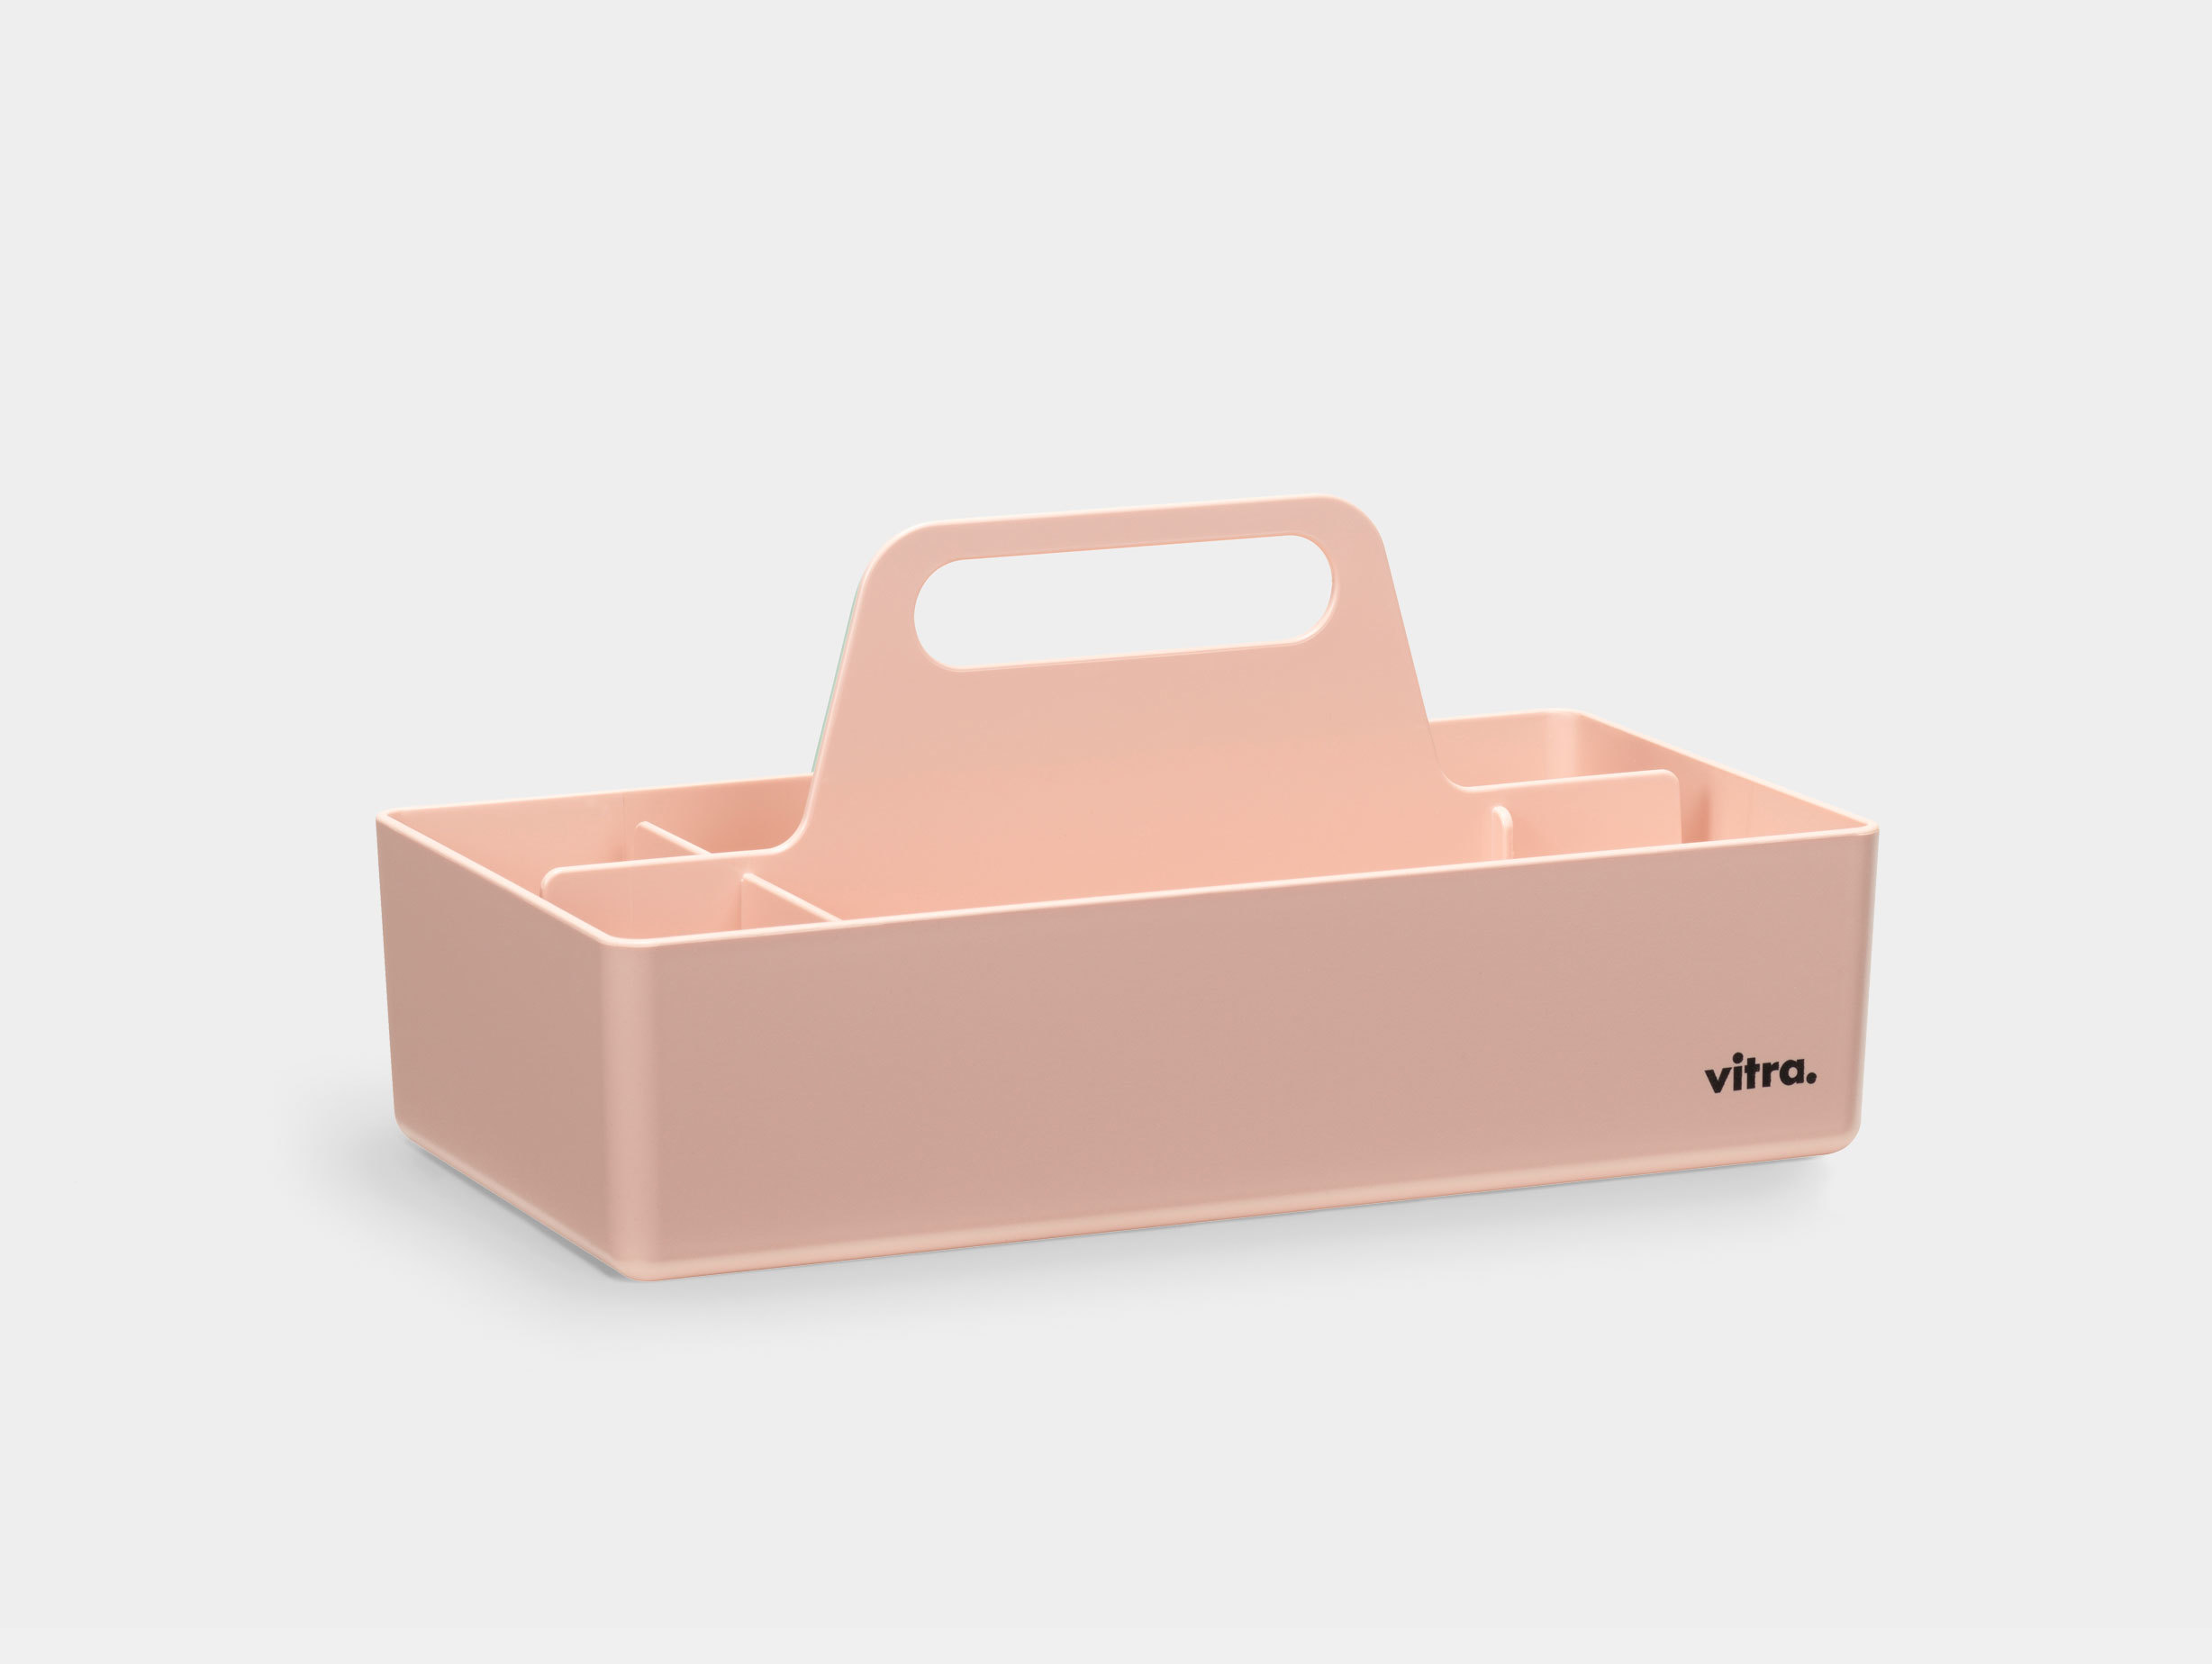 Vitra Toolbox Pale Rose Arik Levy